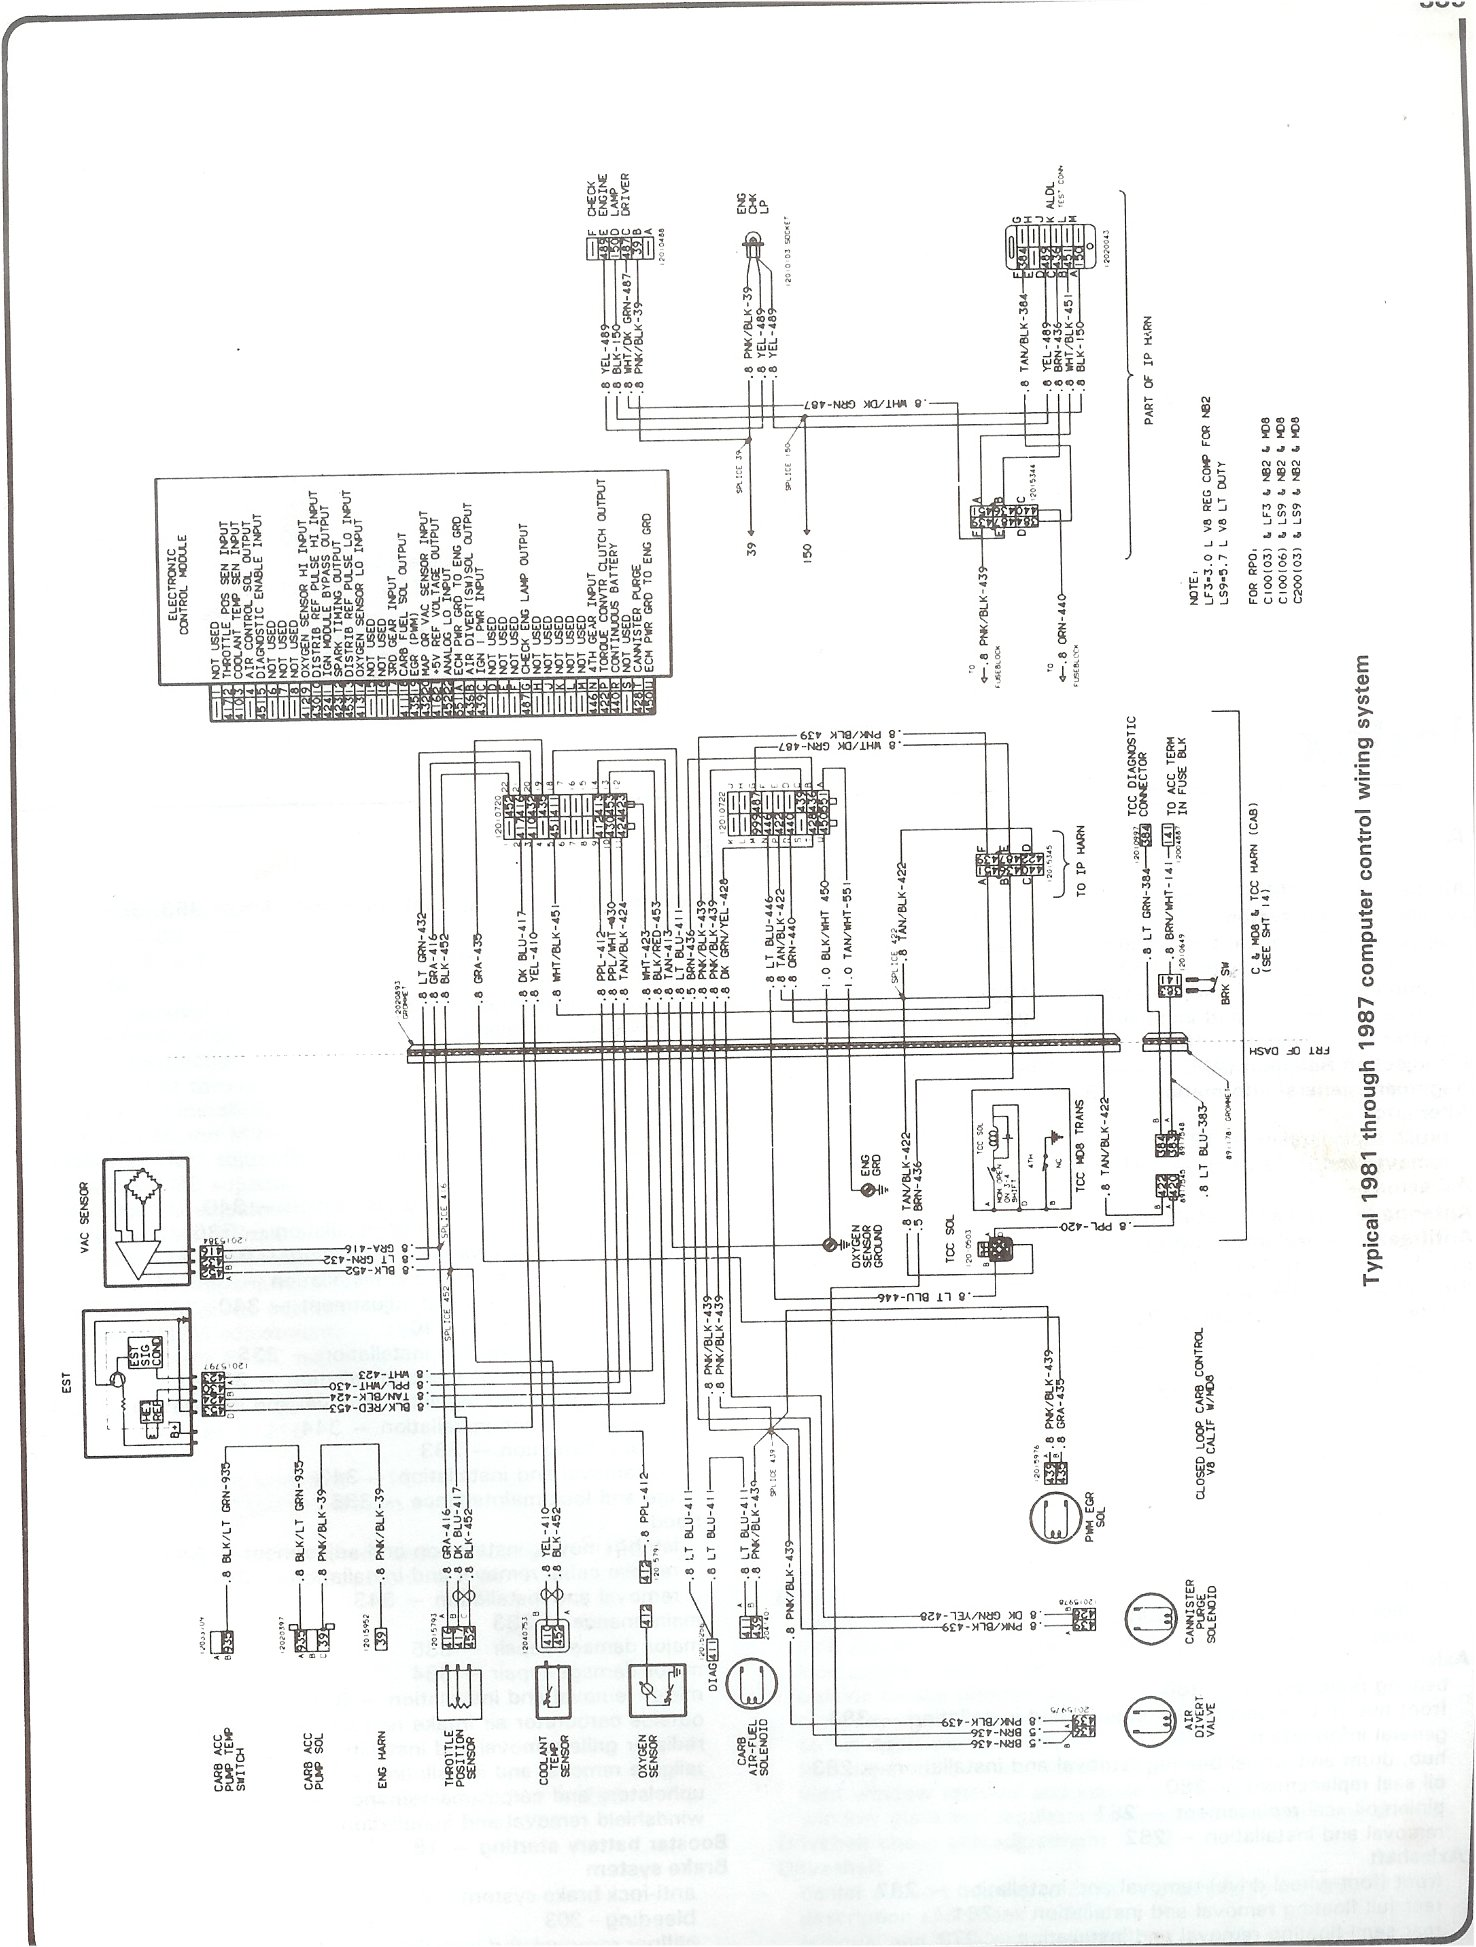 1975 Chevy Blazer Wiring Diagram Just Data 1976 Complete 73 87 Diagrams 96